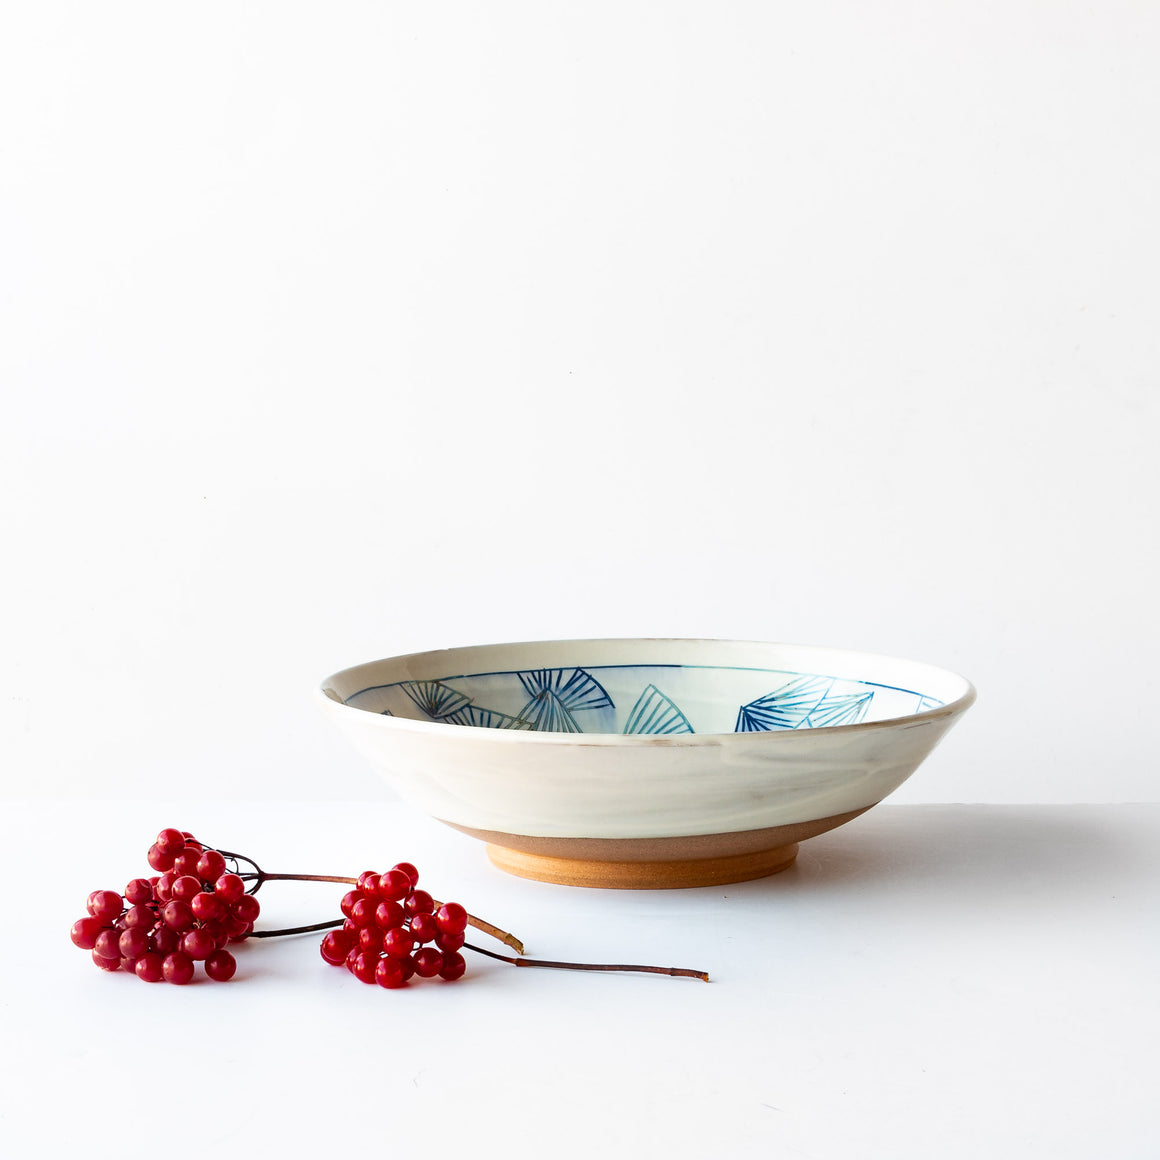 Front View - Large Handcrafted Blue Mishima Presentation Bowl - Sold by Chic & Basta